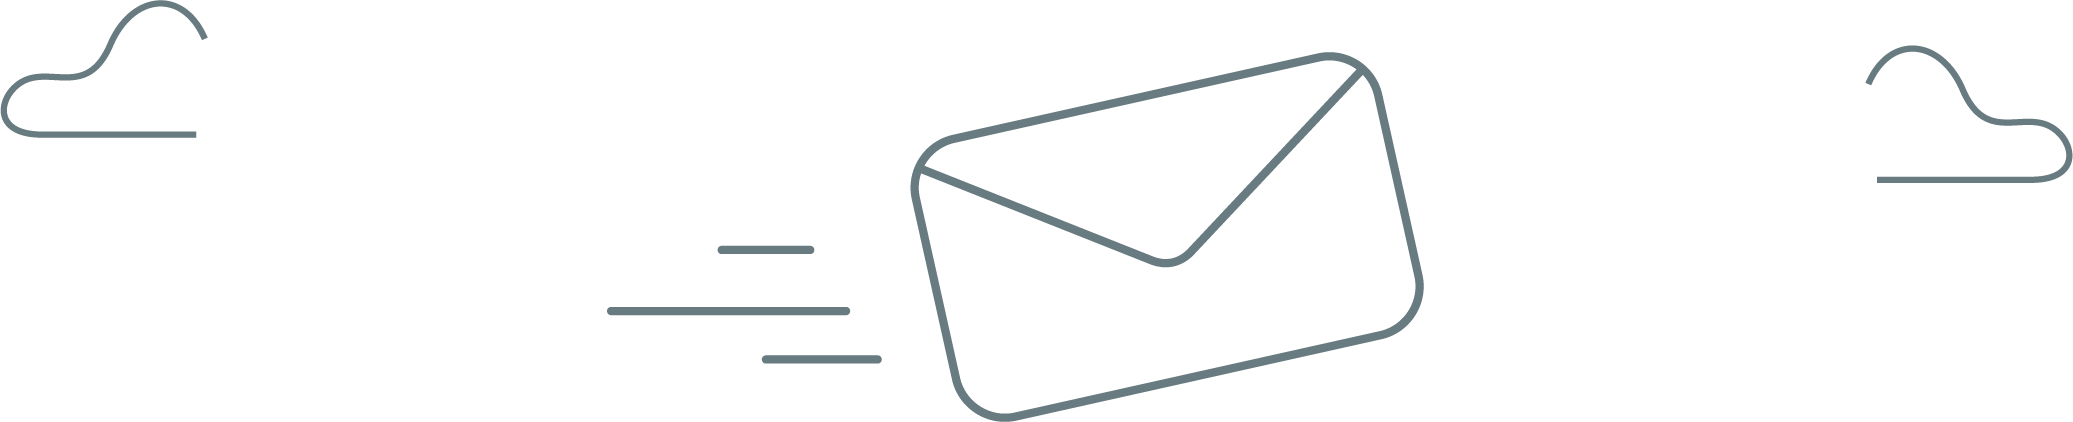 Mail flying